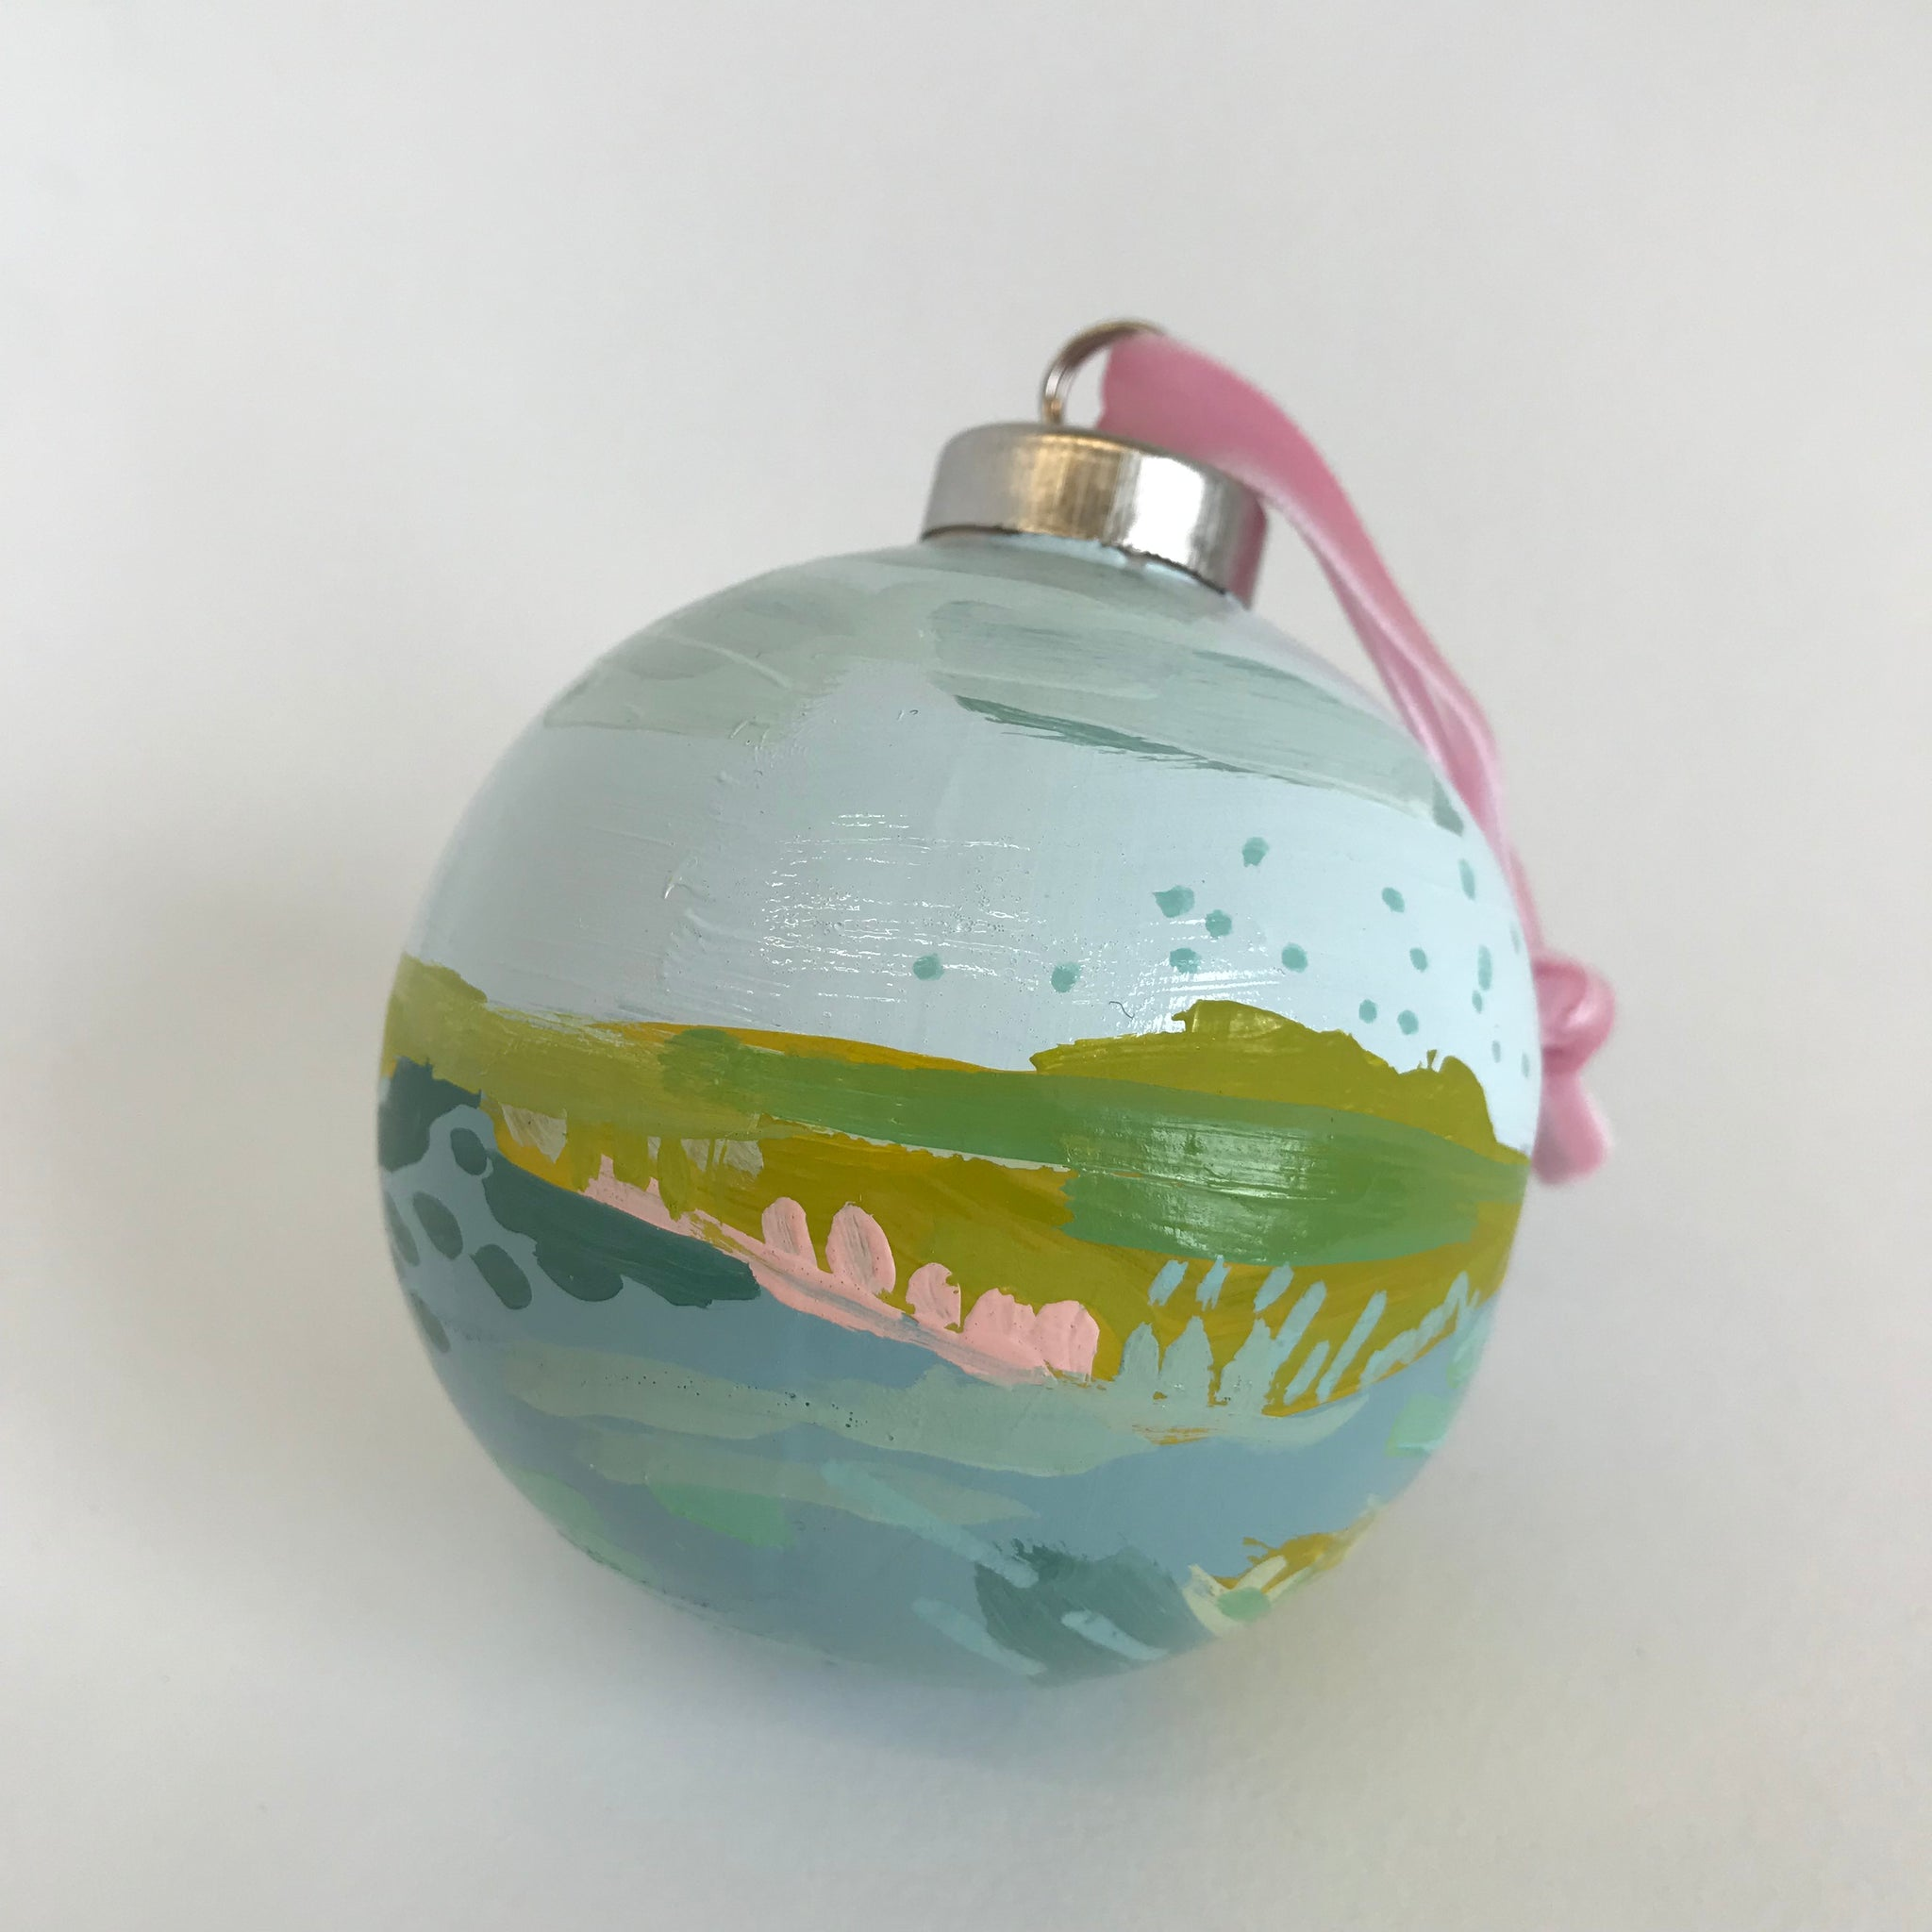 Marsh Ornament 14